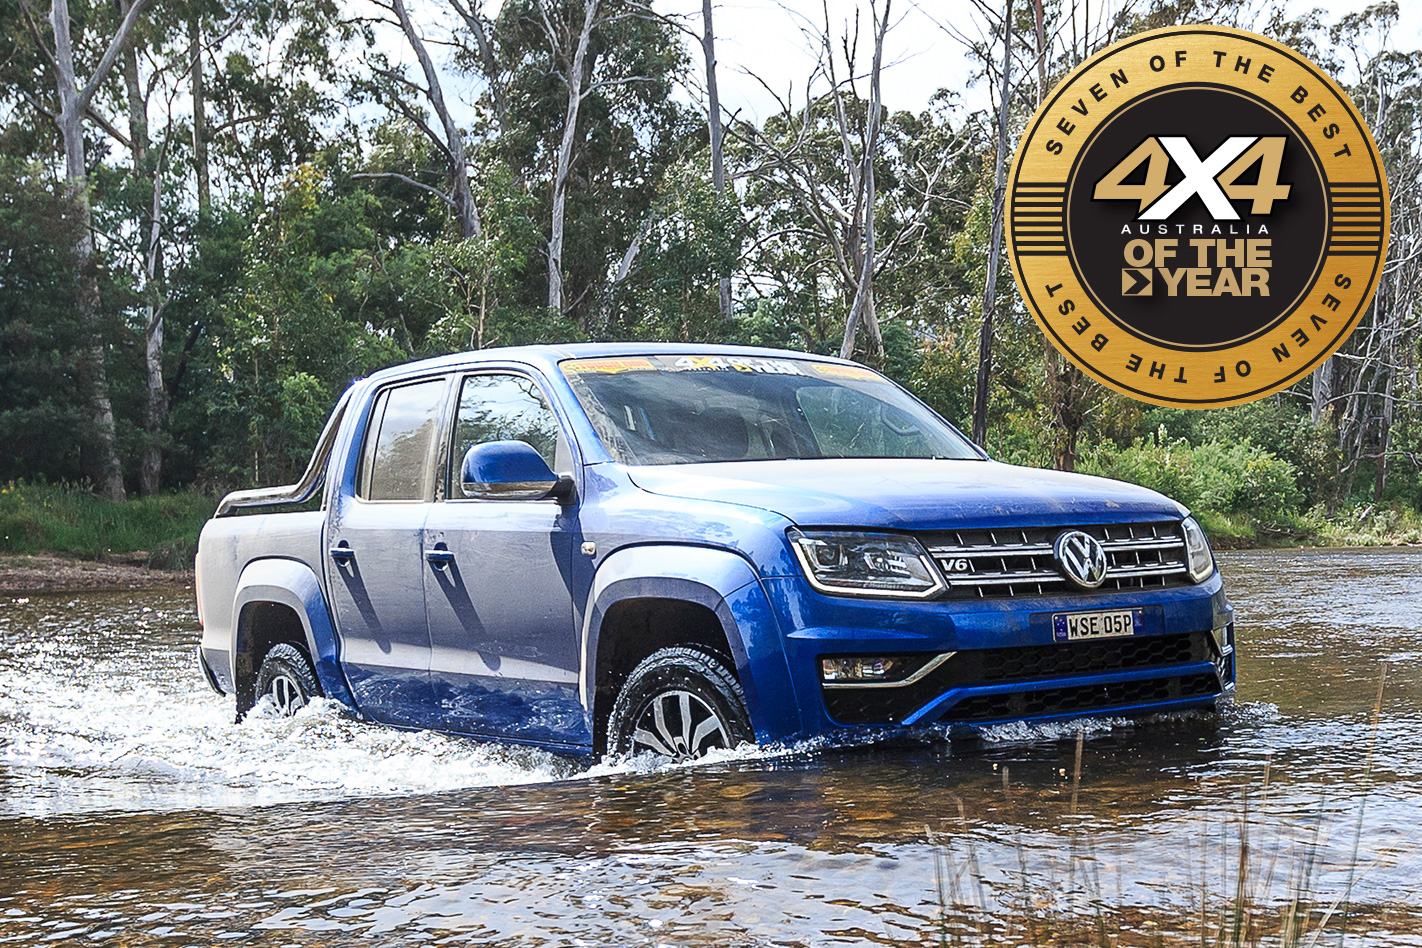 2017 4x4oty 2 volkswagen amarok tdi550 ultimate 4x4 australia. Black Bedroom Furniture Sets. Home Design Ideas